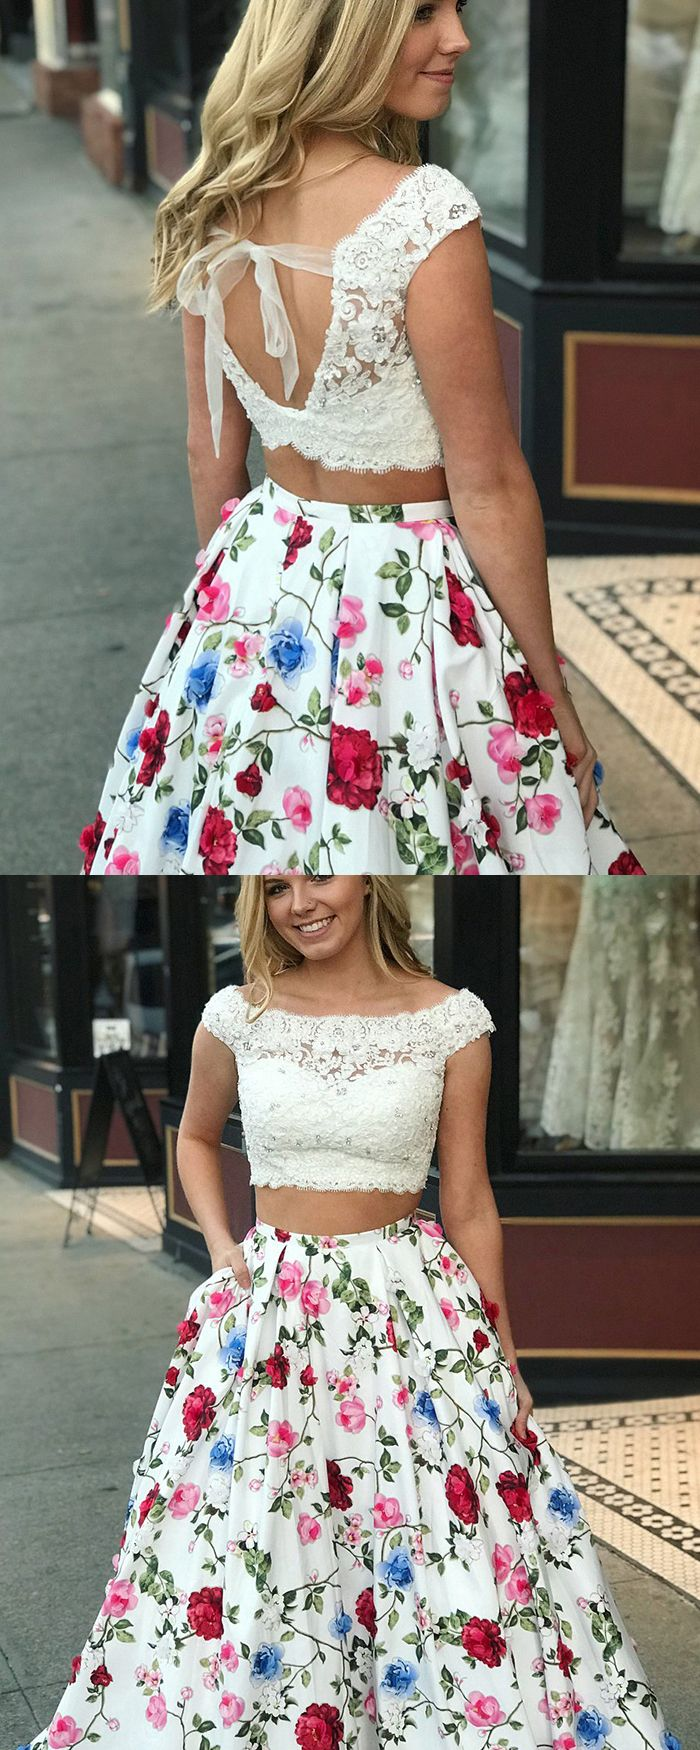 Two Piece Off The Shoulder Lace Bodice Floral Print Prom Dress With Pockets Pm1395 Prom Dresses With Pockets Floral Prom Dresses Floral Prom Dress Long [ 1750 x 700 Pixel ]